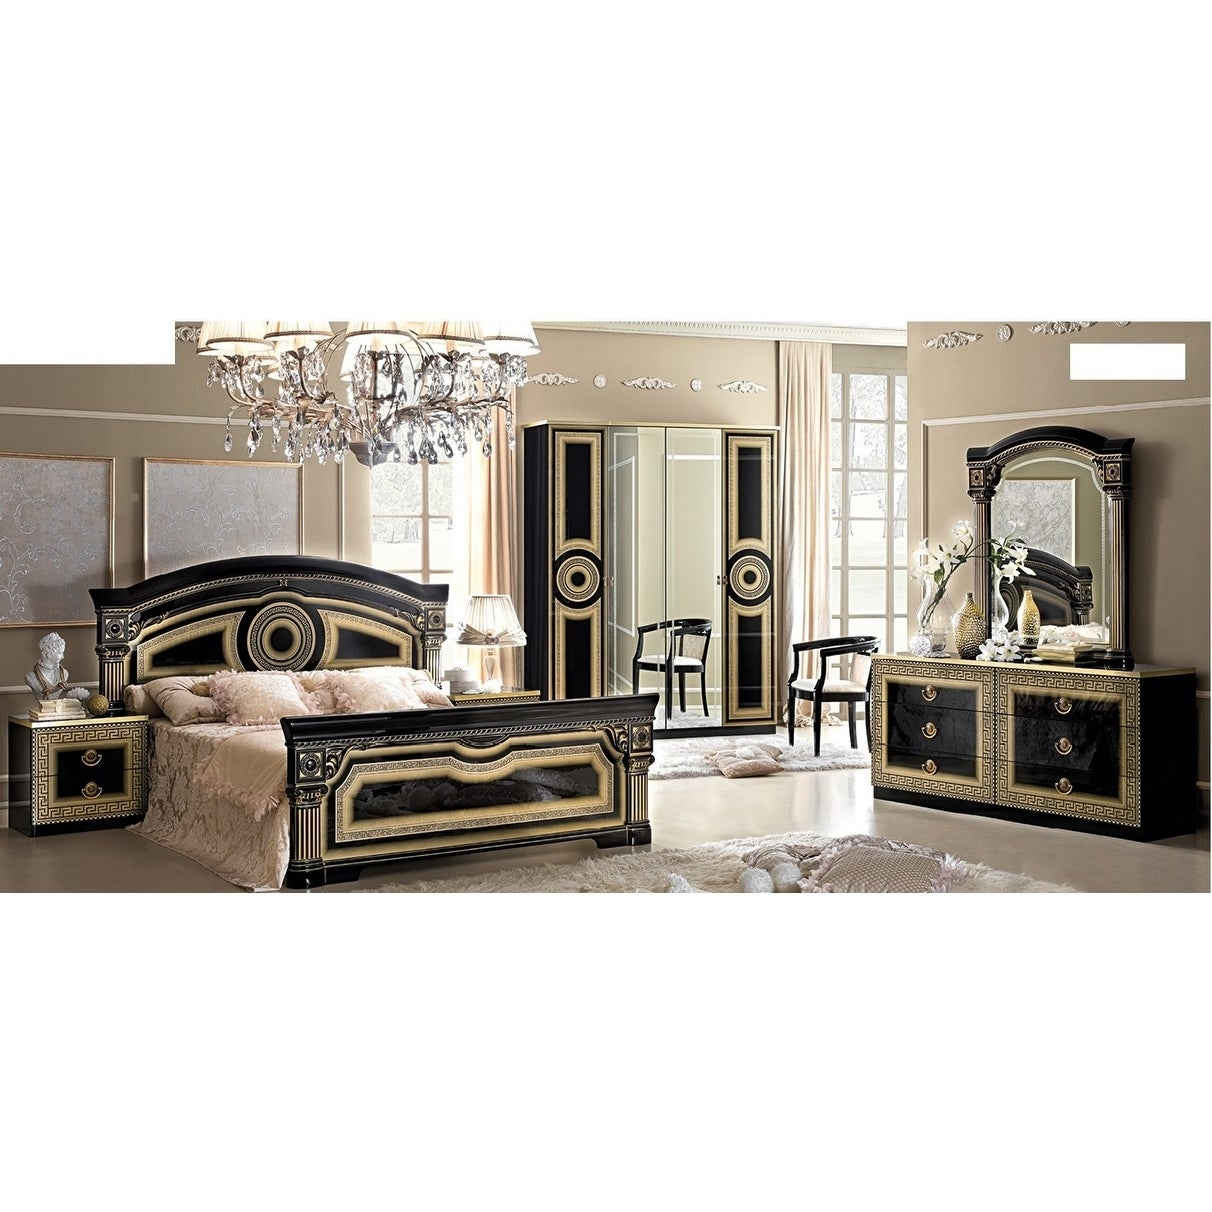 Shop Luca Home Black And Gold Queen Bedroom Set Overstock 11190165